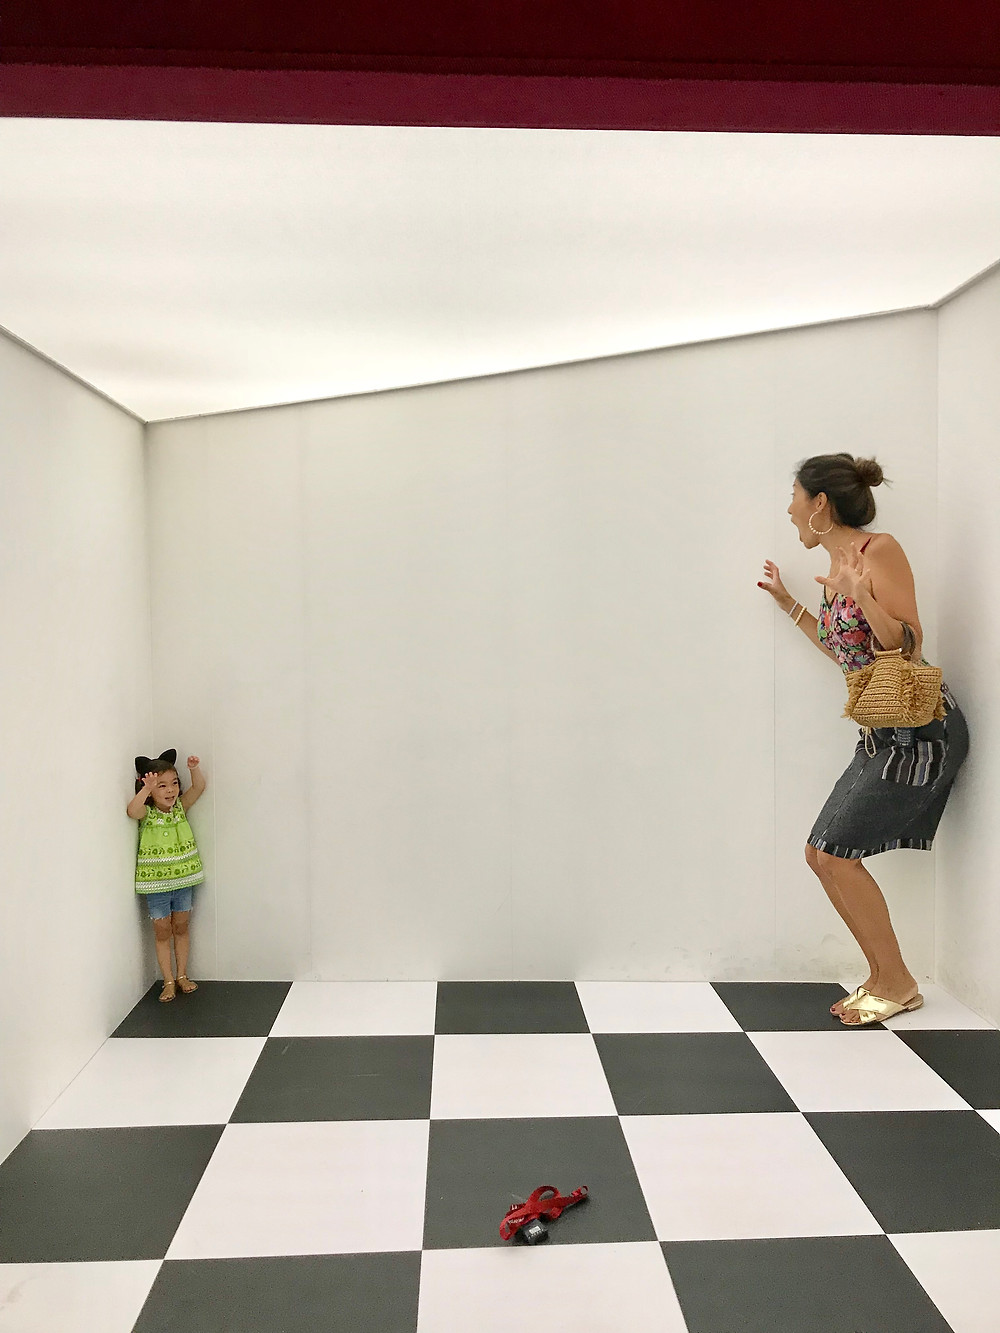 Escher the Exhibition and Experience, Industry City, Escher NYC, M. C. Escher, Curious G and Me, Infinity Mirrors